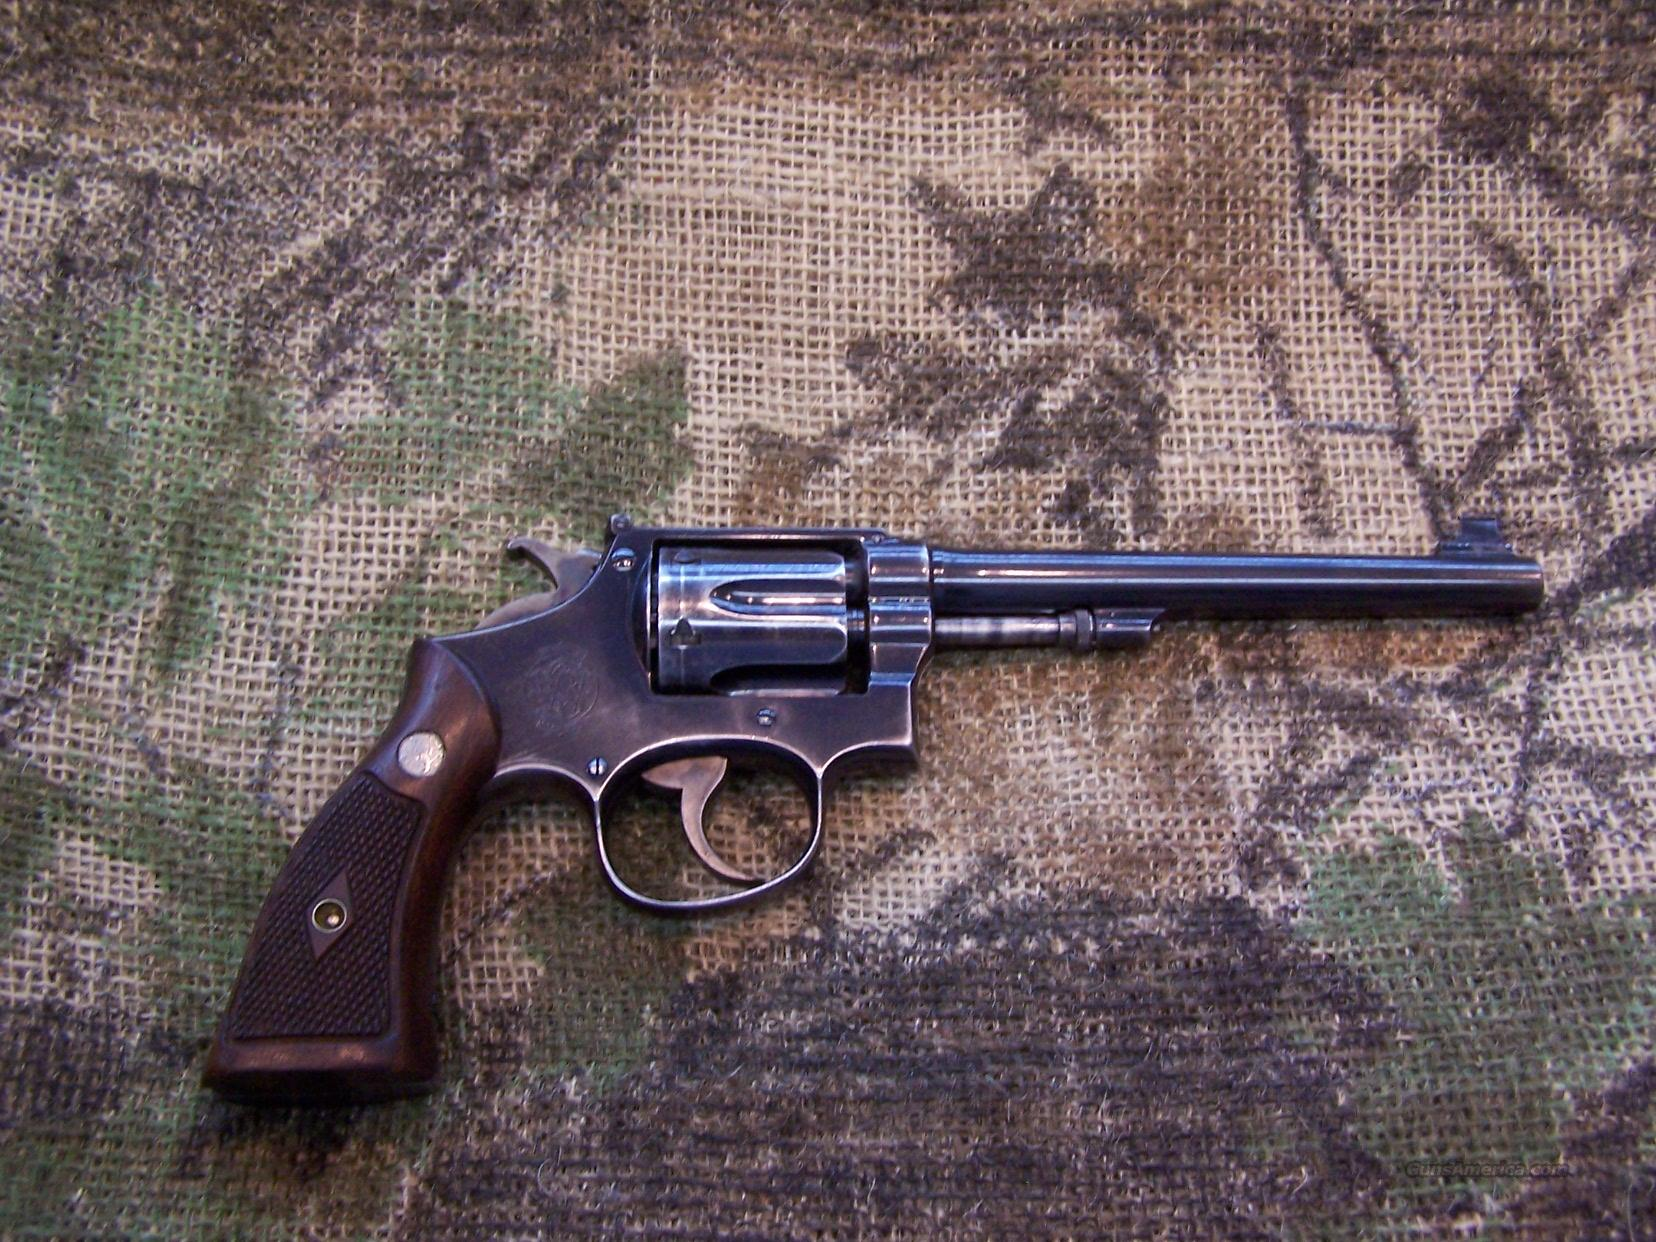 Smith & Wesson 1905 38 Special Target Revolver M&P  Guns > Pistols > Smith & Wesson Revolvers > Pre-1945